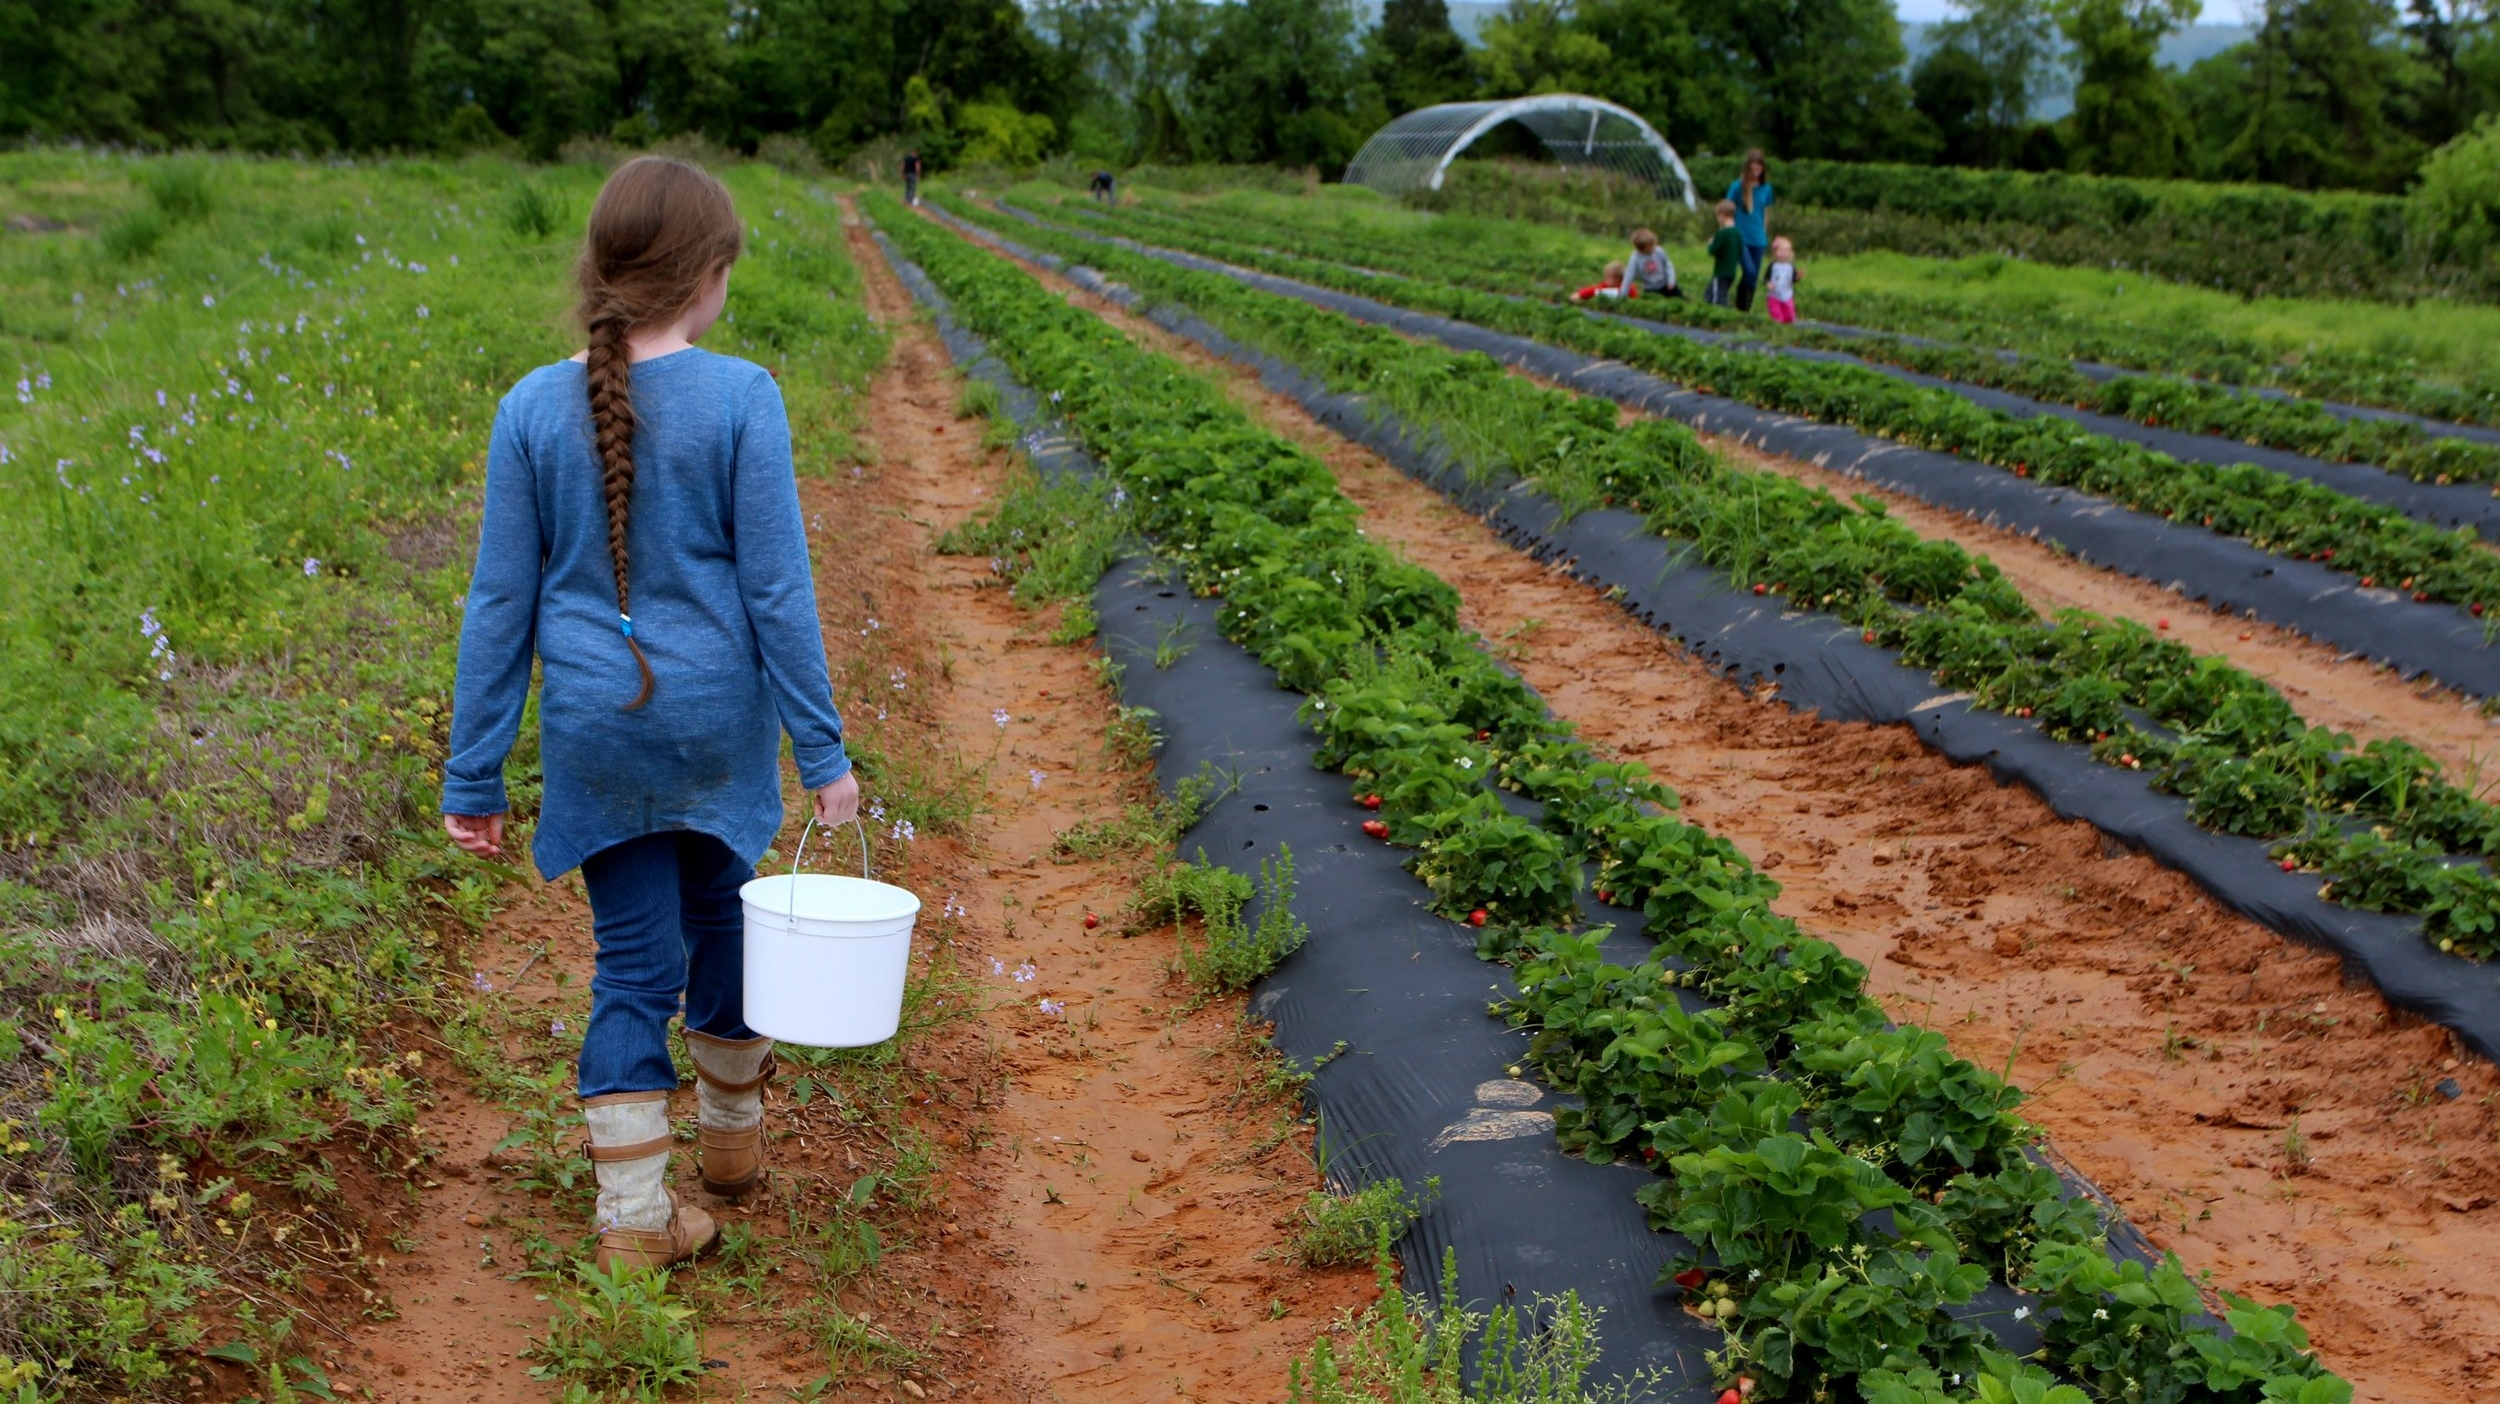 Hunter Robinson, author Kat Robinson's daughter, roams the rows at Cox Berry Farm looking for ripe strawberries.